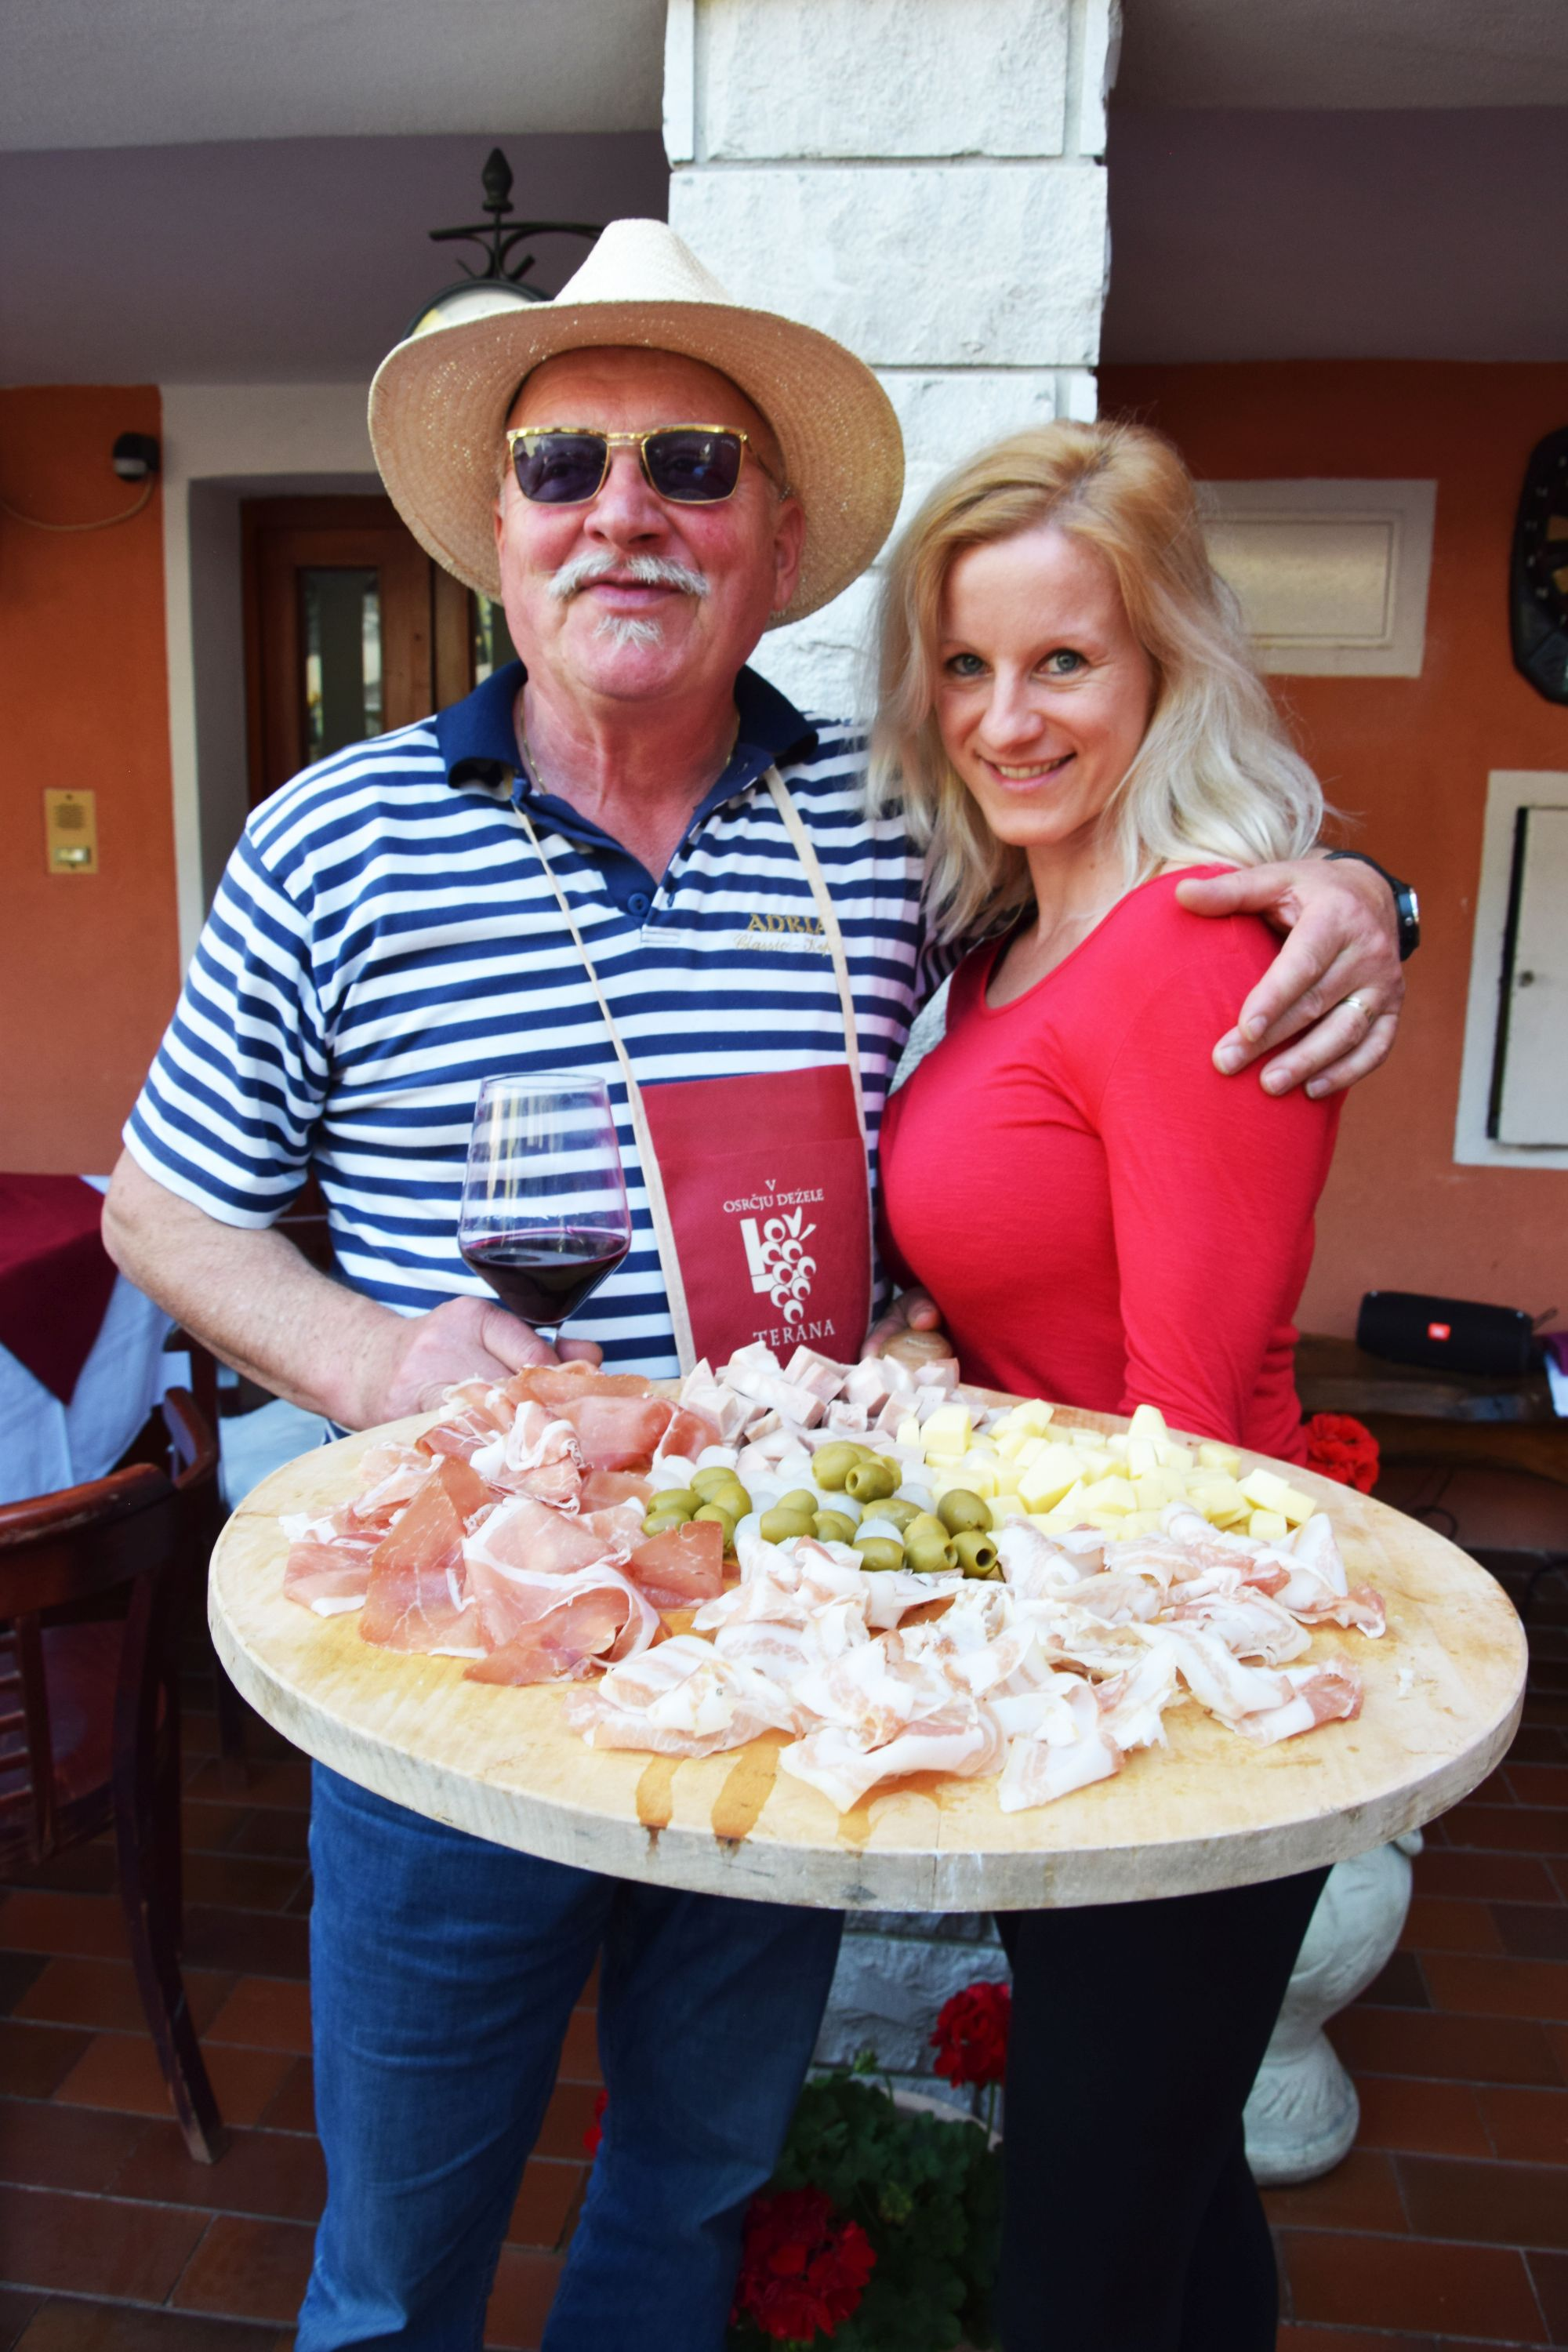 Man and woman pose with cured meats and cheese platter